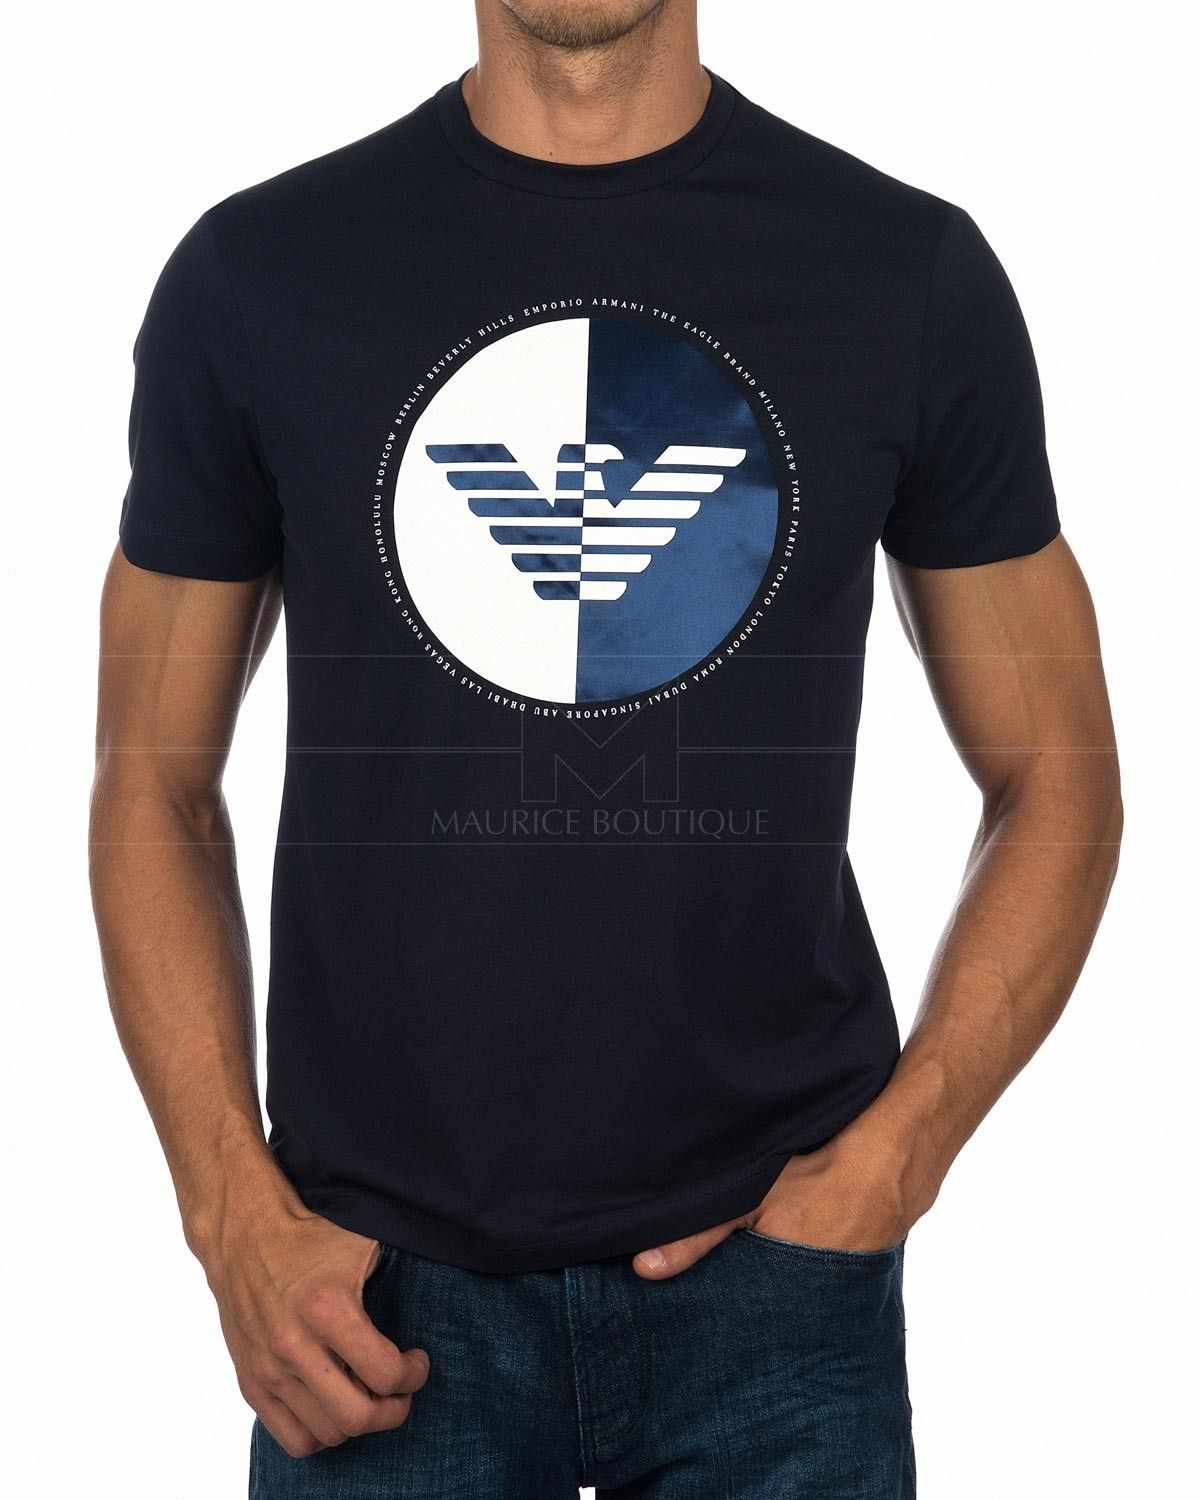 eb5f681f Emporio Armani T Shirt - Blue & White Eagle in 2019 | SAVCO ...